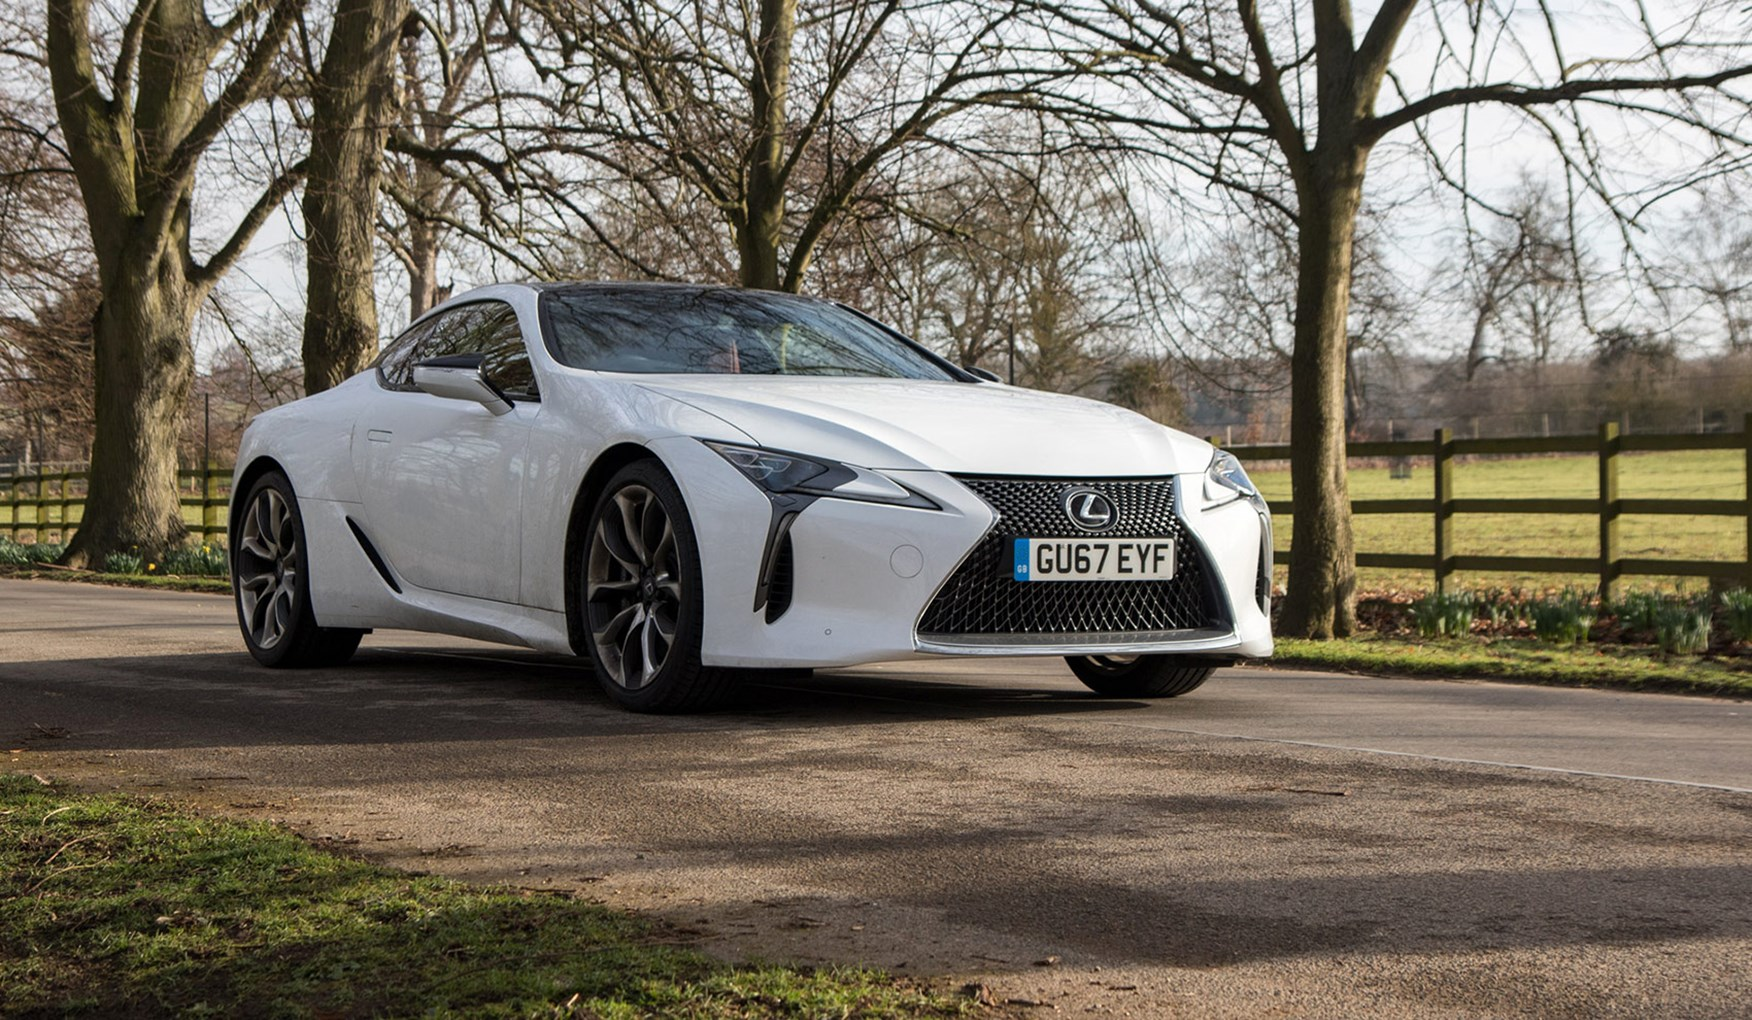 Lexus Lc500 Review Meet The Slickest Lexus This Side Of The Lfa